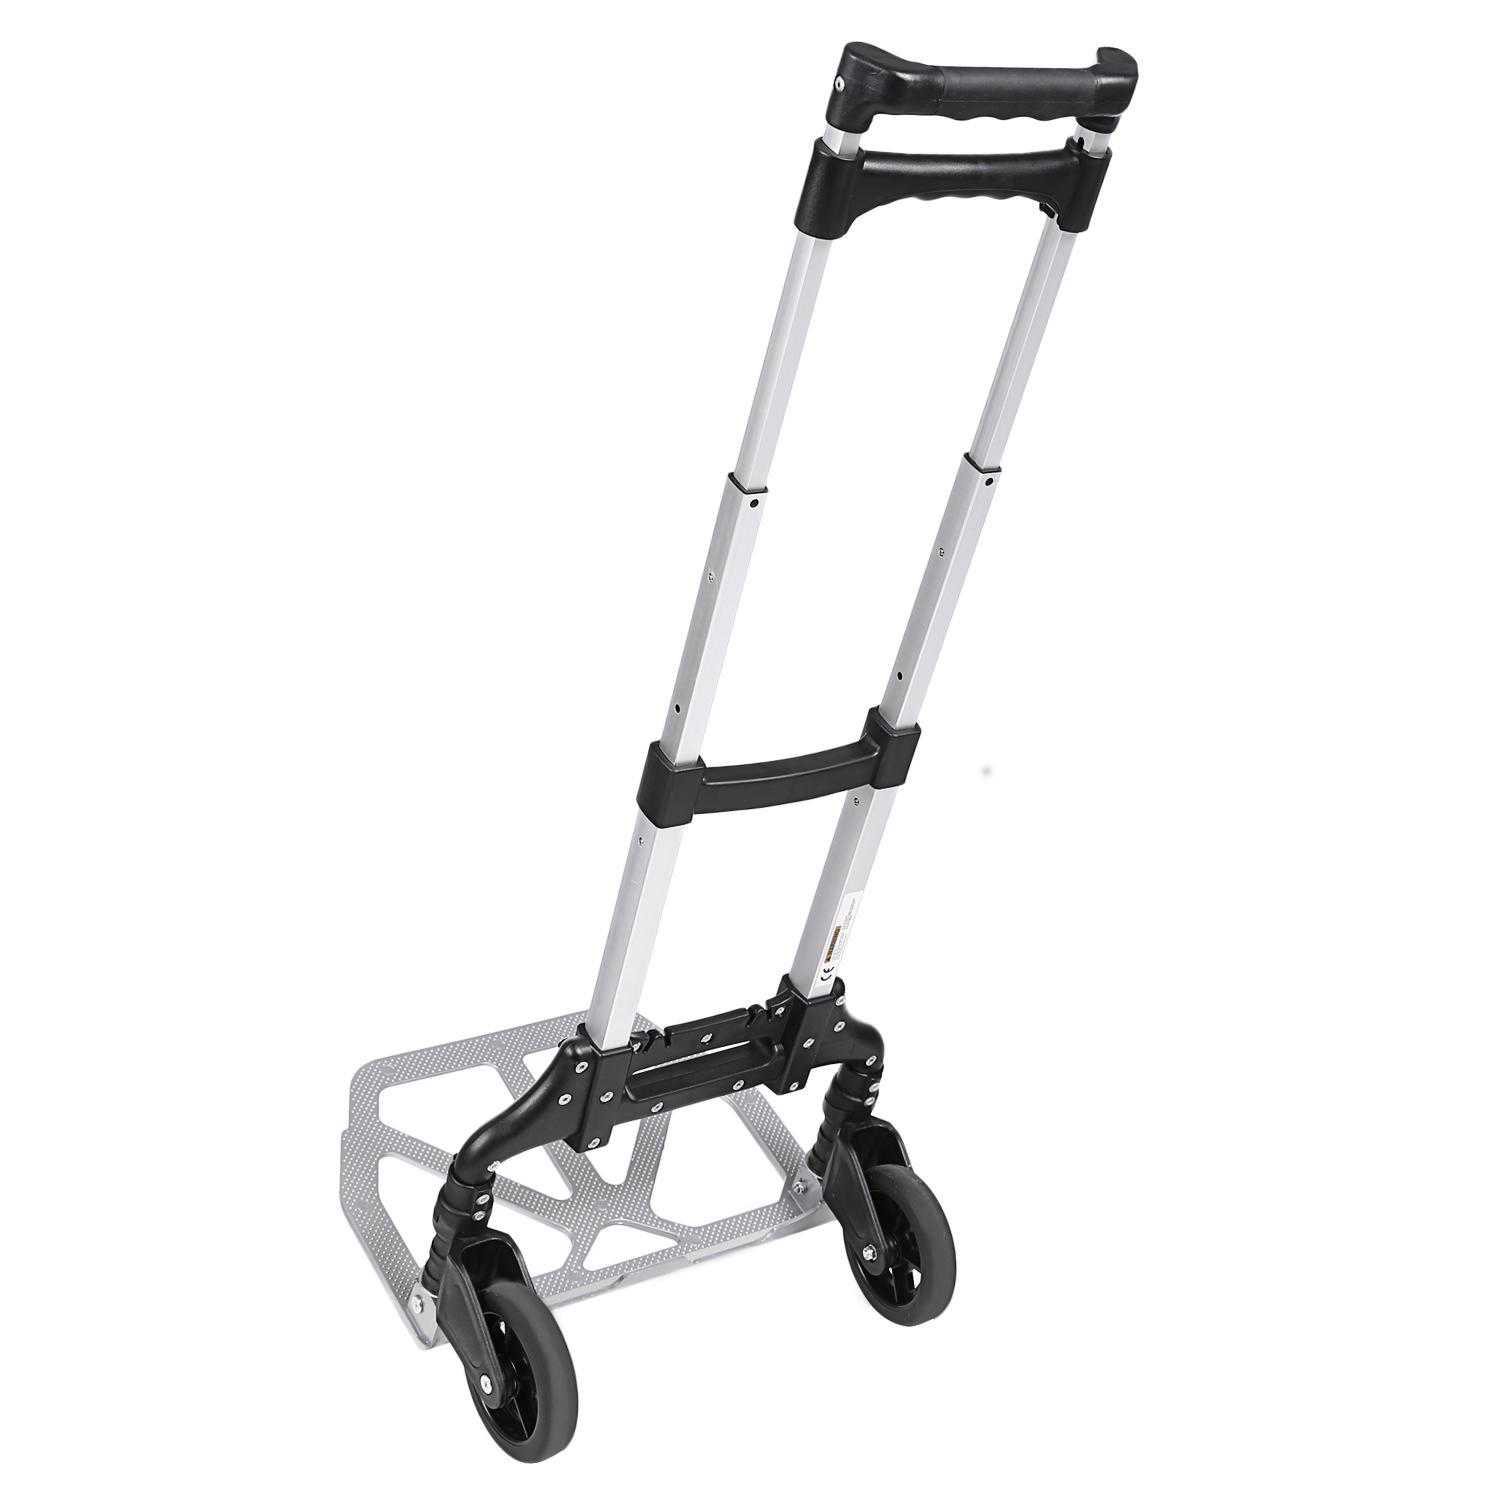 Telescoping Portable Folding Hand Truck Dolly Luggage Carts